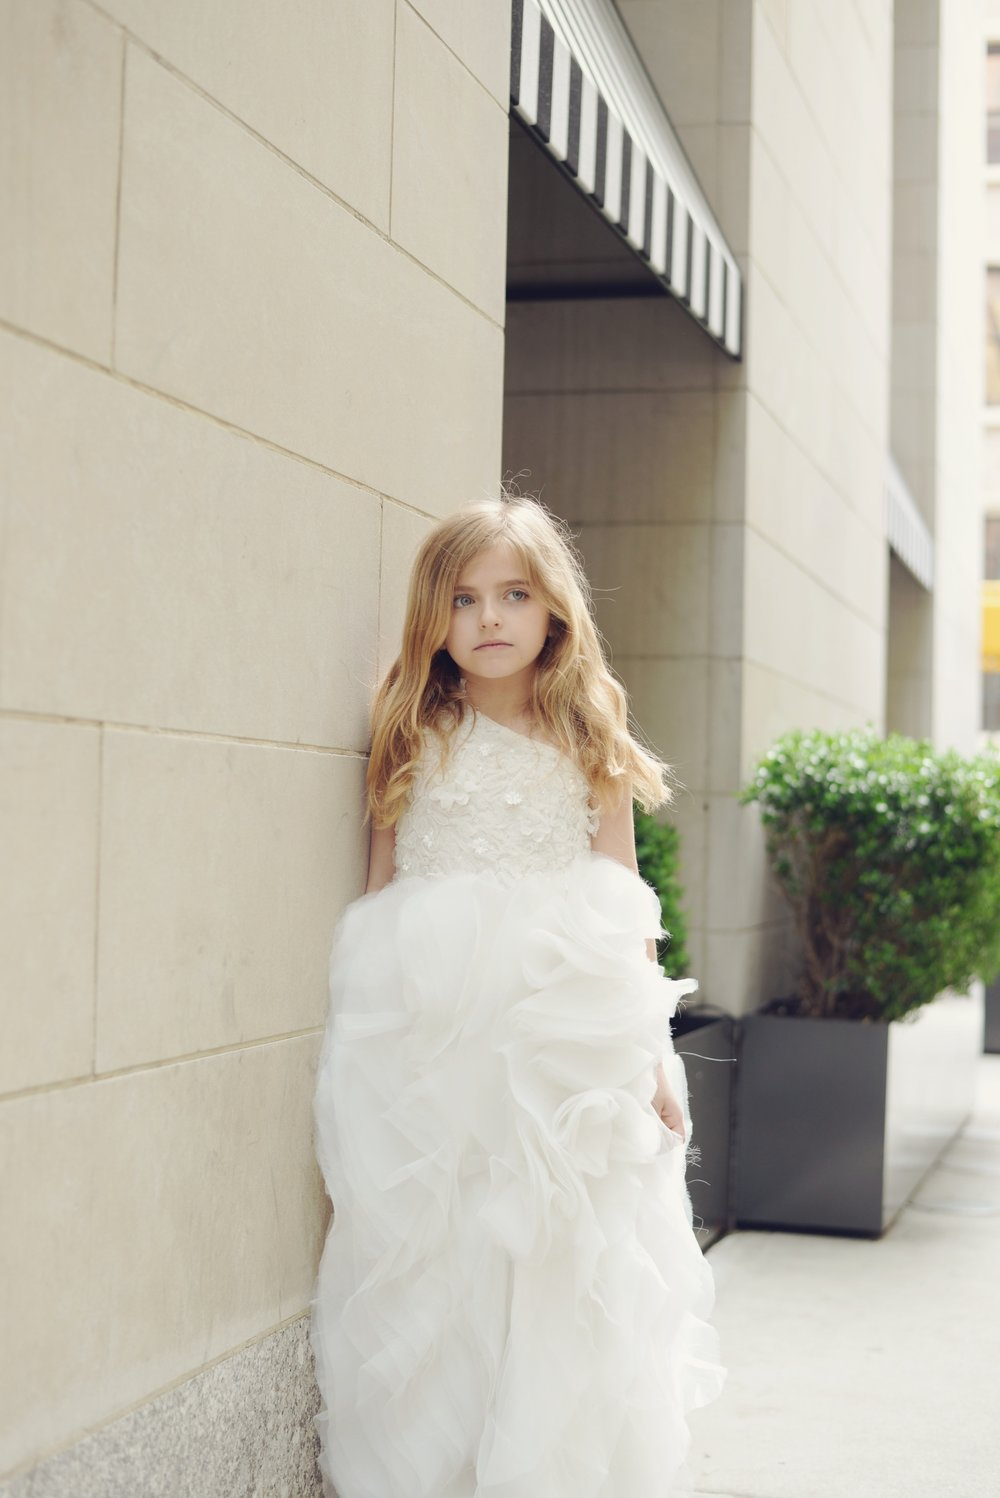 Enfant+Street+Style+by+Gina+Kim+Photography-75.jpeg